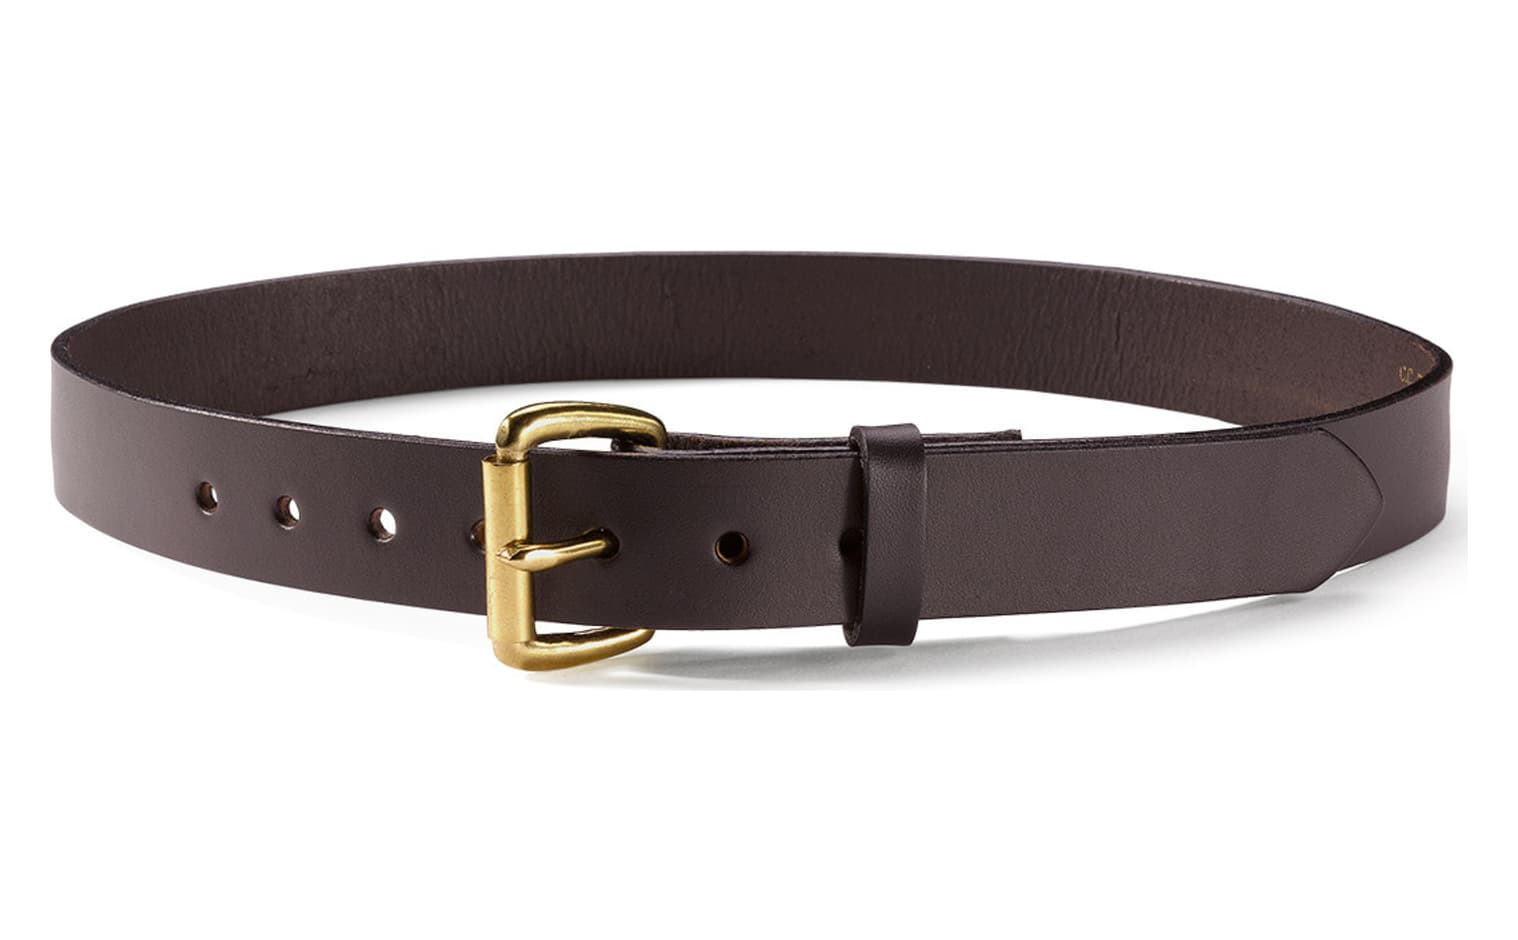 filson 63203 1 1 4 inch leather belt brown 36